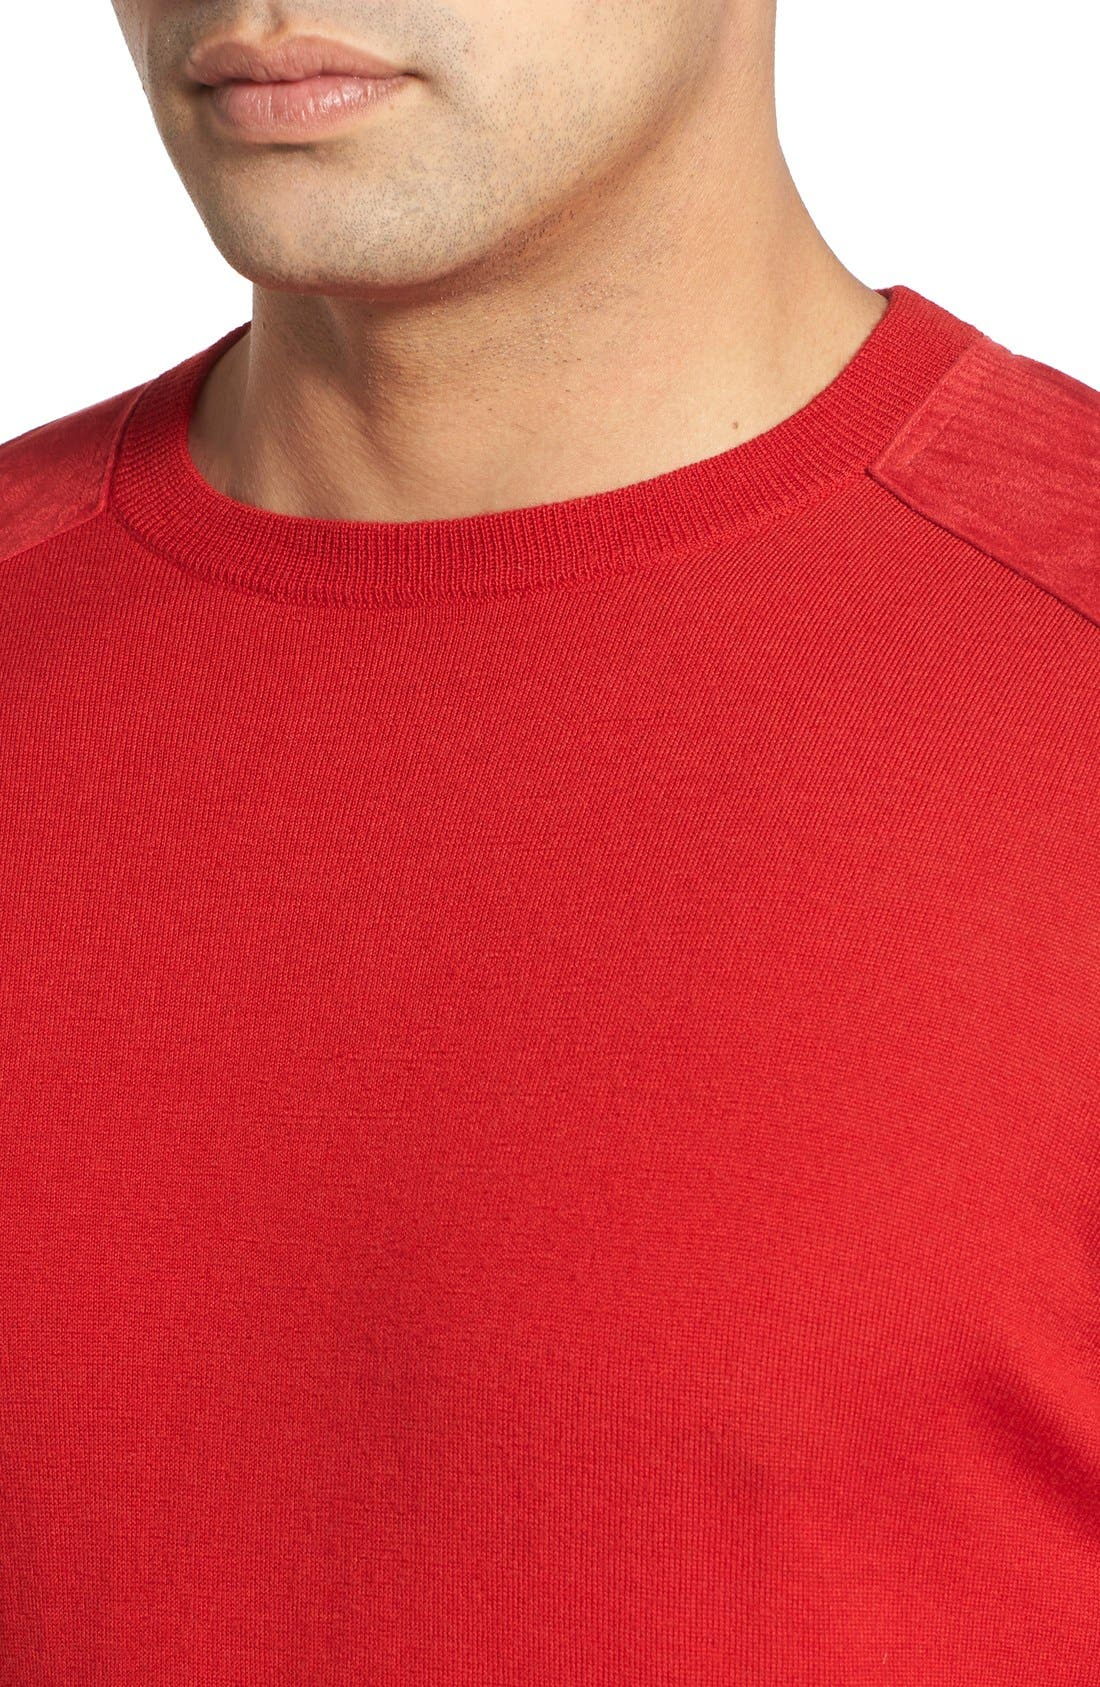 Regular Fit Crewneck Sweater,                             Alternate thumbnail 3, color,                             Cherry